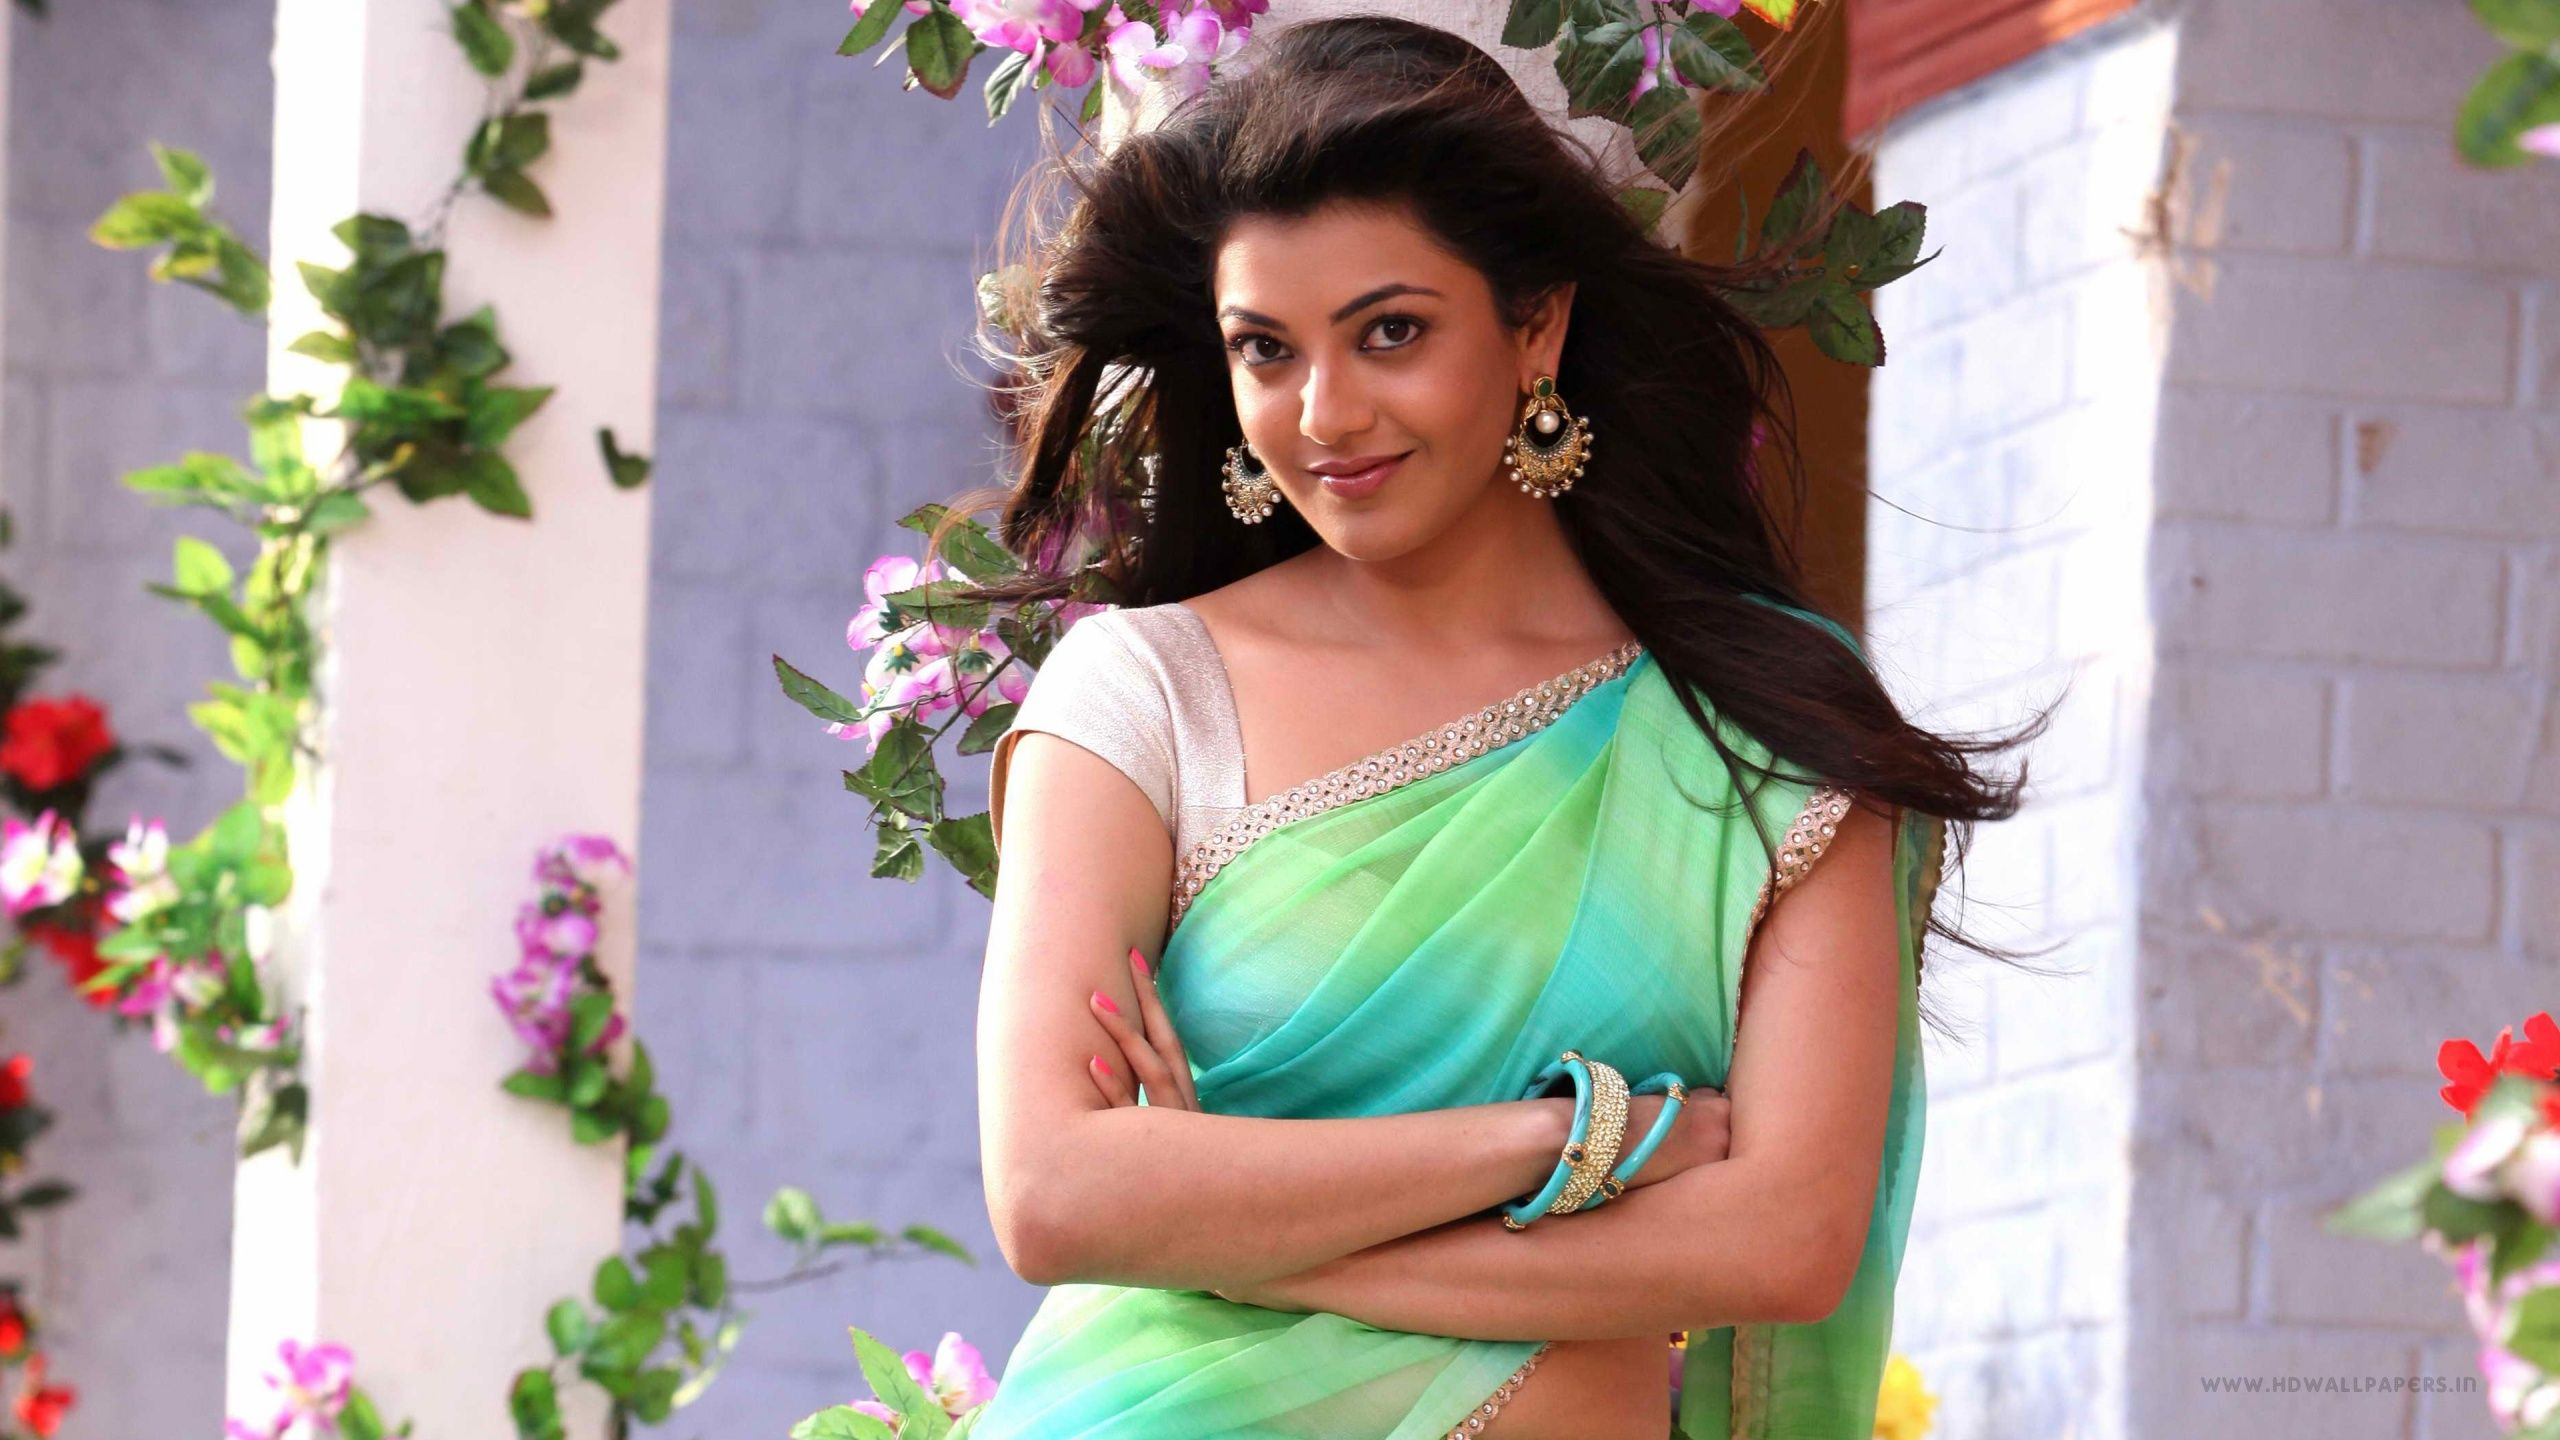 Wallpaper download kajal agarwal - Royal Fun Break Kajal Agarwal Hd Wallpapers Free Download 1600 1063 Kajal Images Download